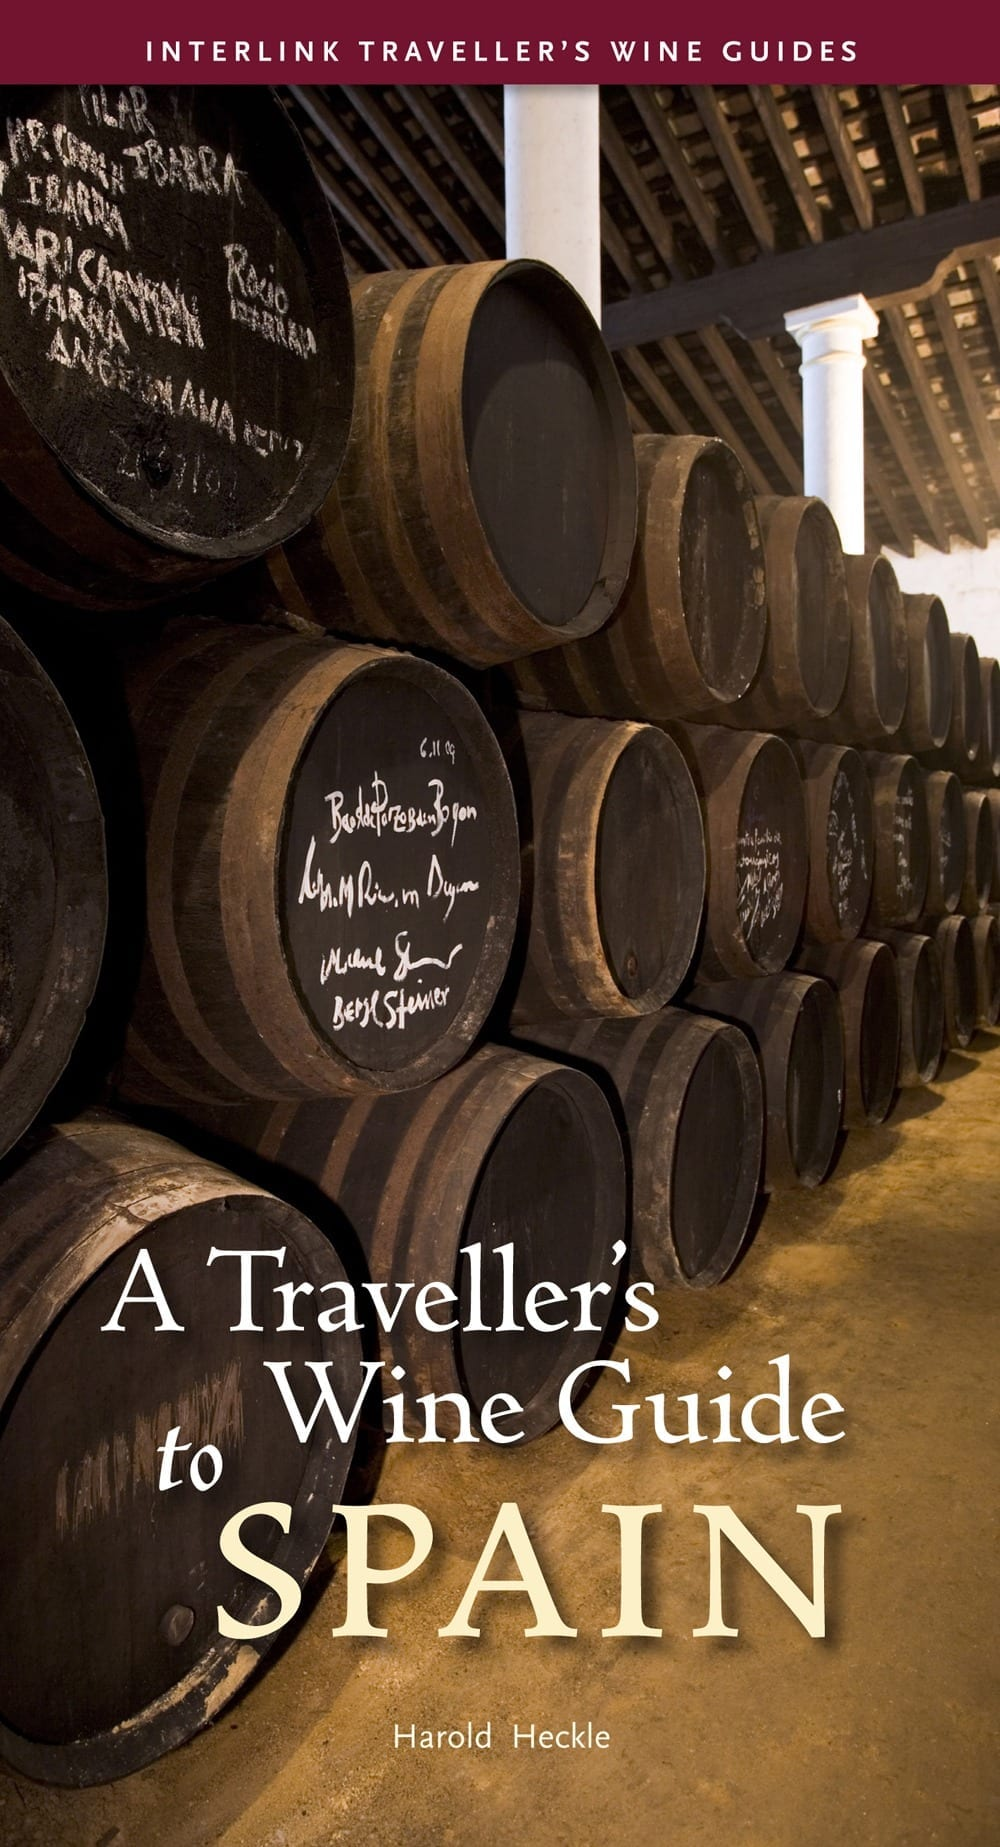 A Traveller's Wine Guide to Spain